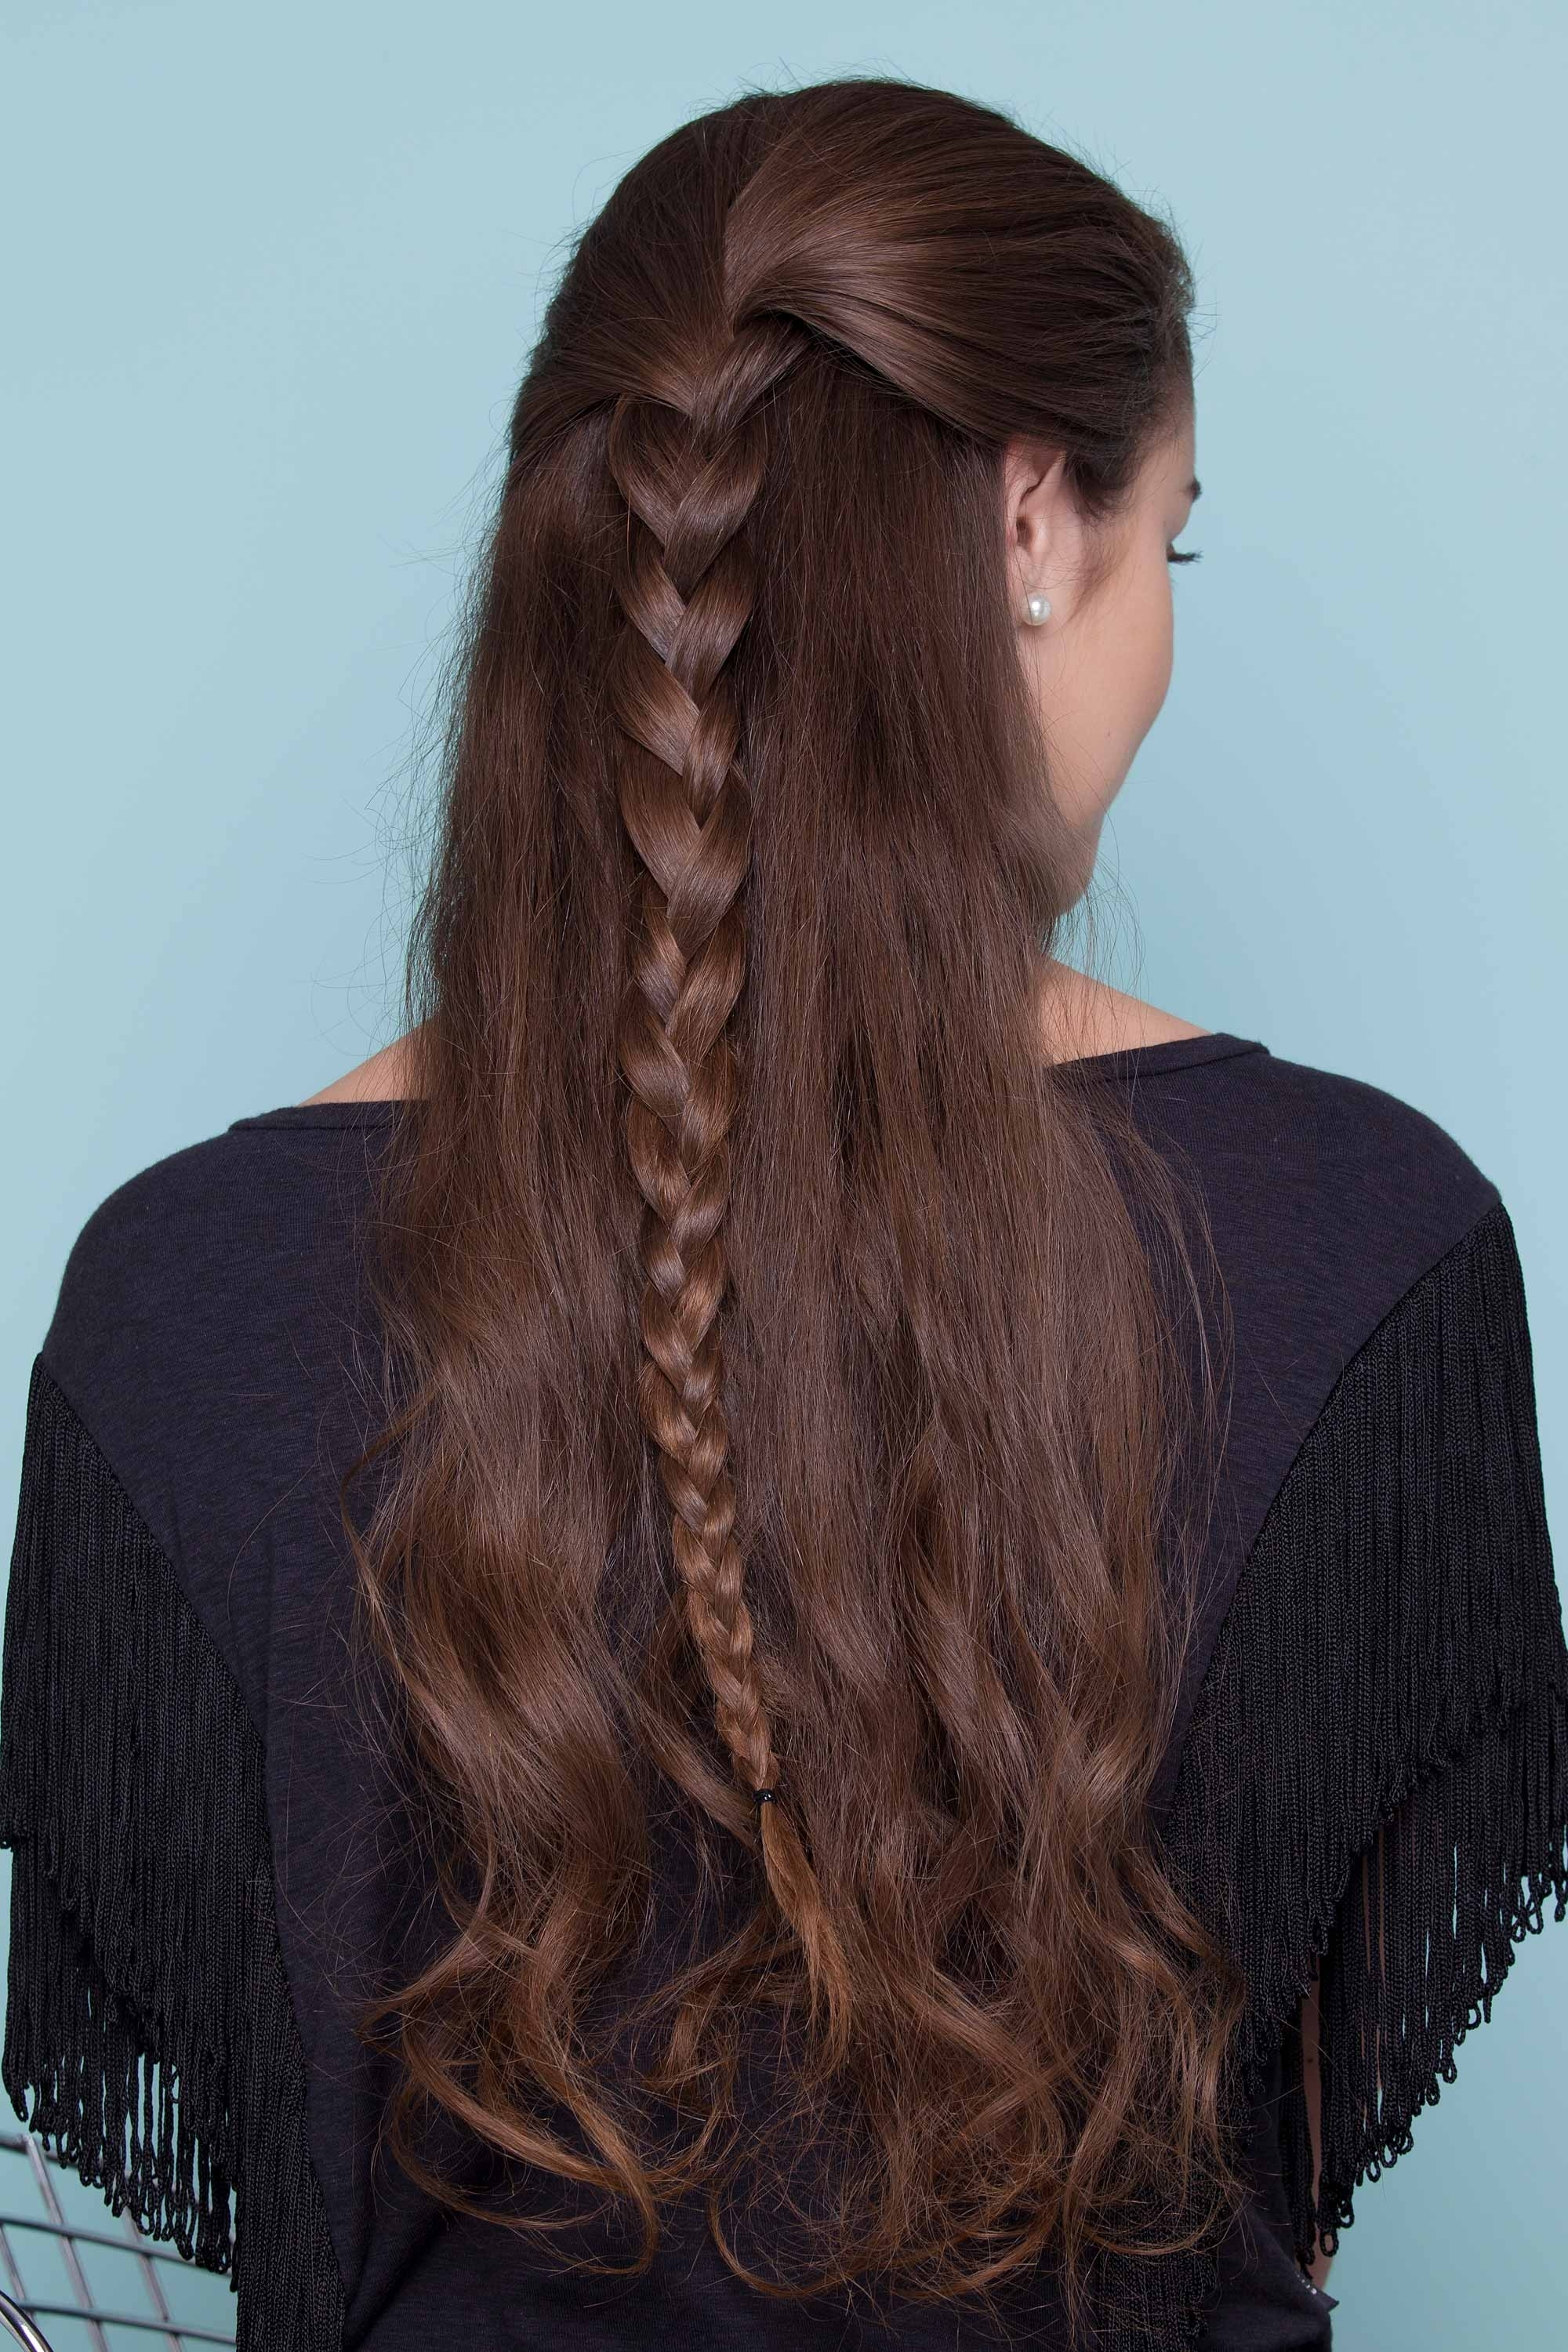 Most Up To Date Triple Braid Ponytail Hairstyles Pertaining To Half Braided Hairstyles: 44 Pretty, Super Flattering Looks (View 14 of 20)